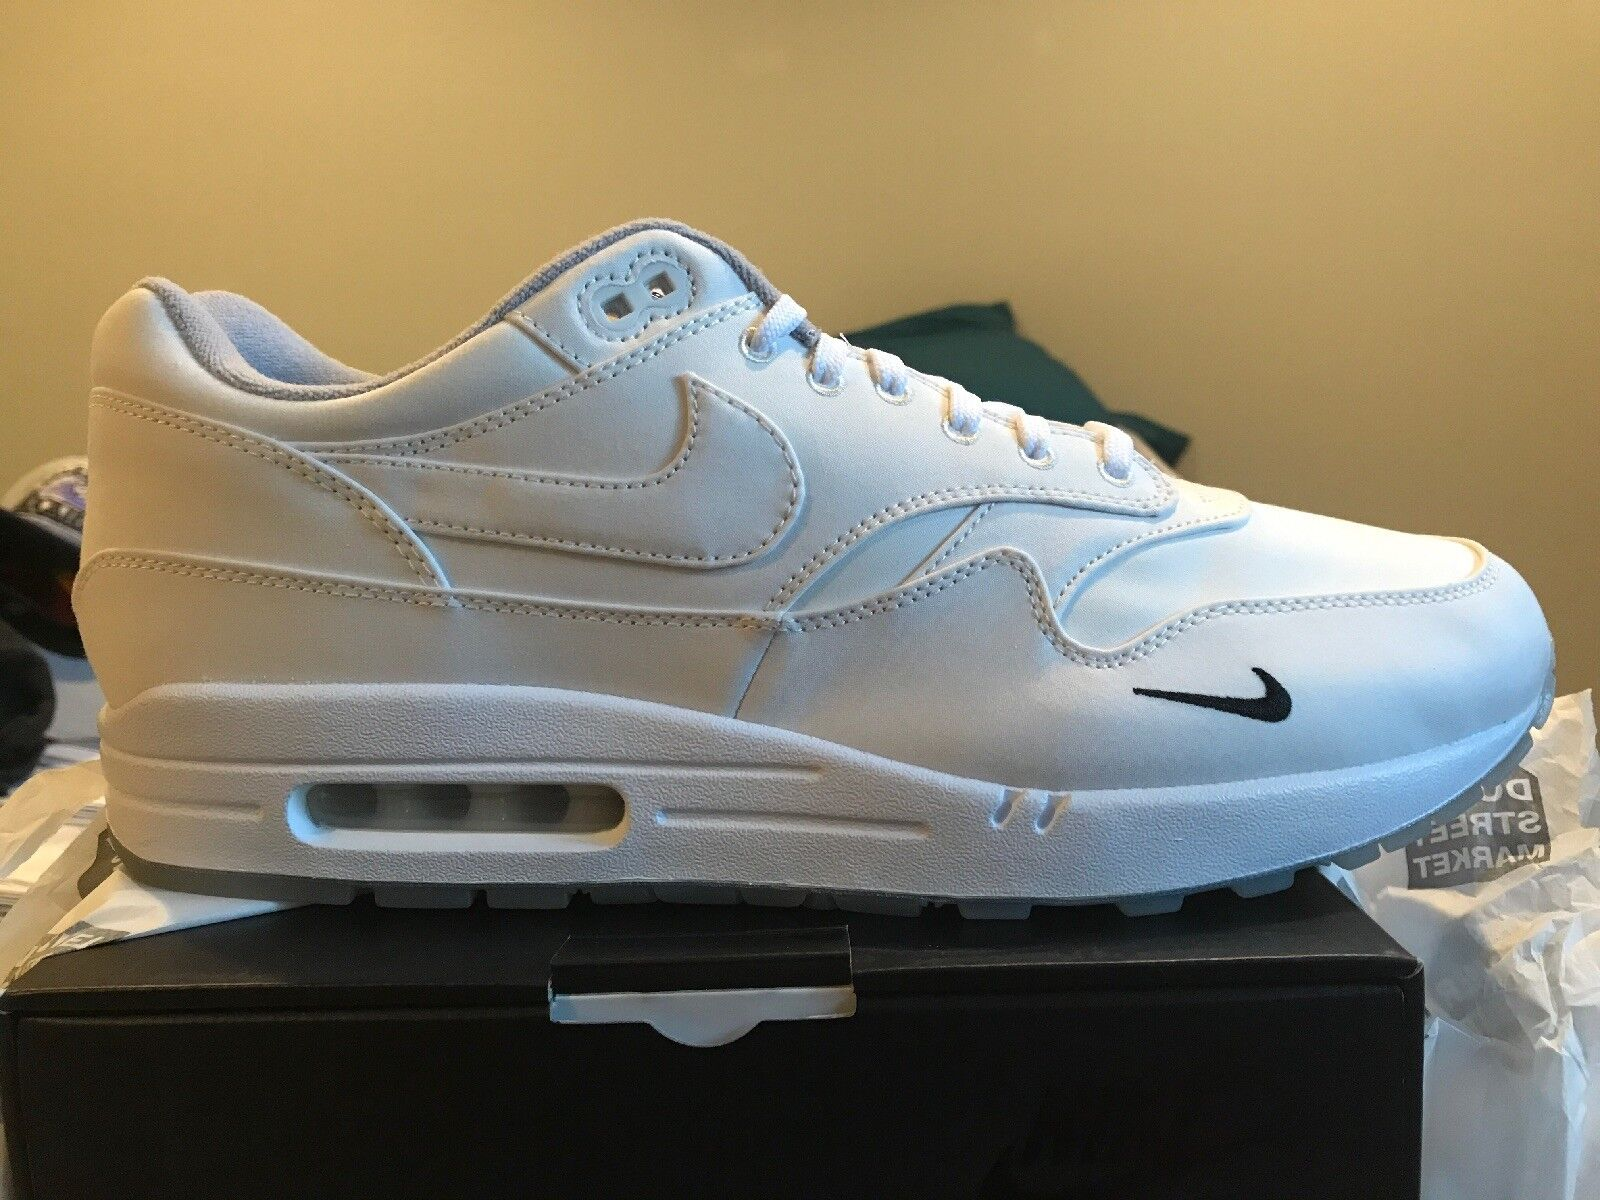 Nike Air Max 1 DSM Comfortable New shoes for men and women, limited time discount